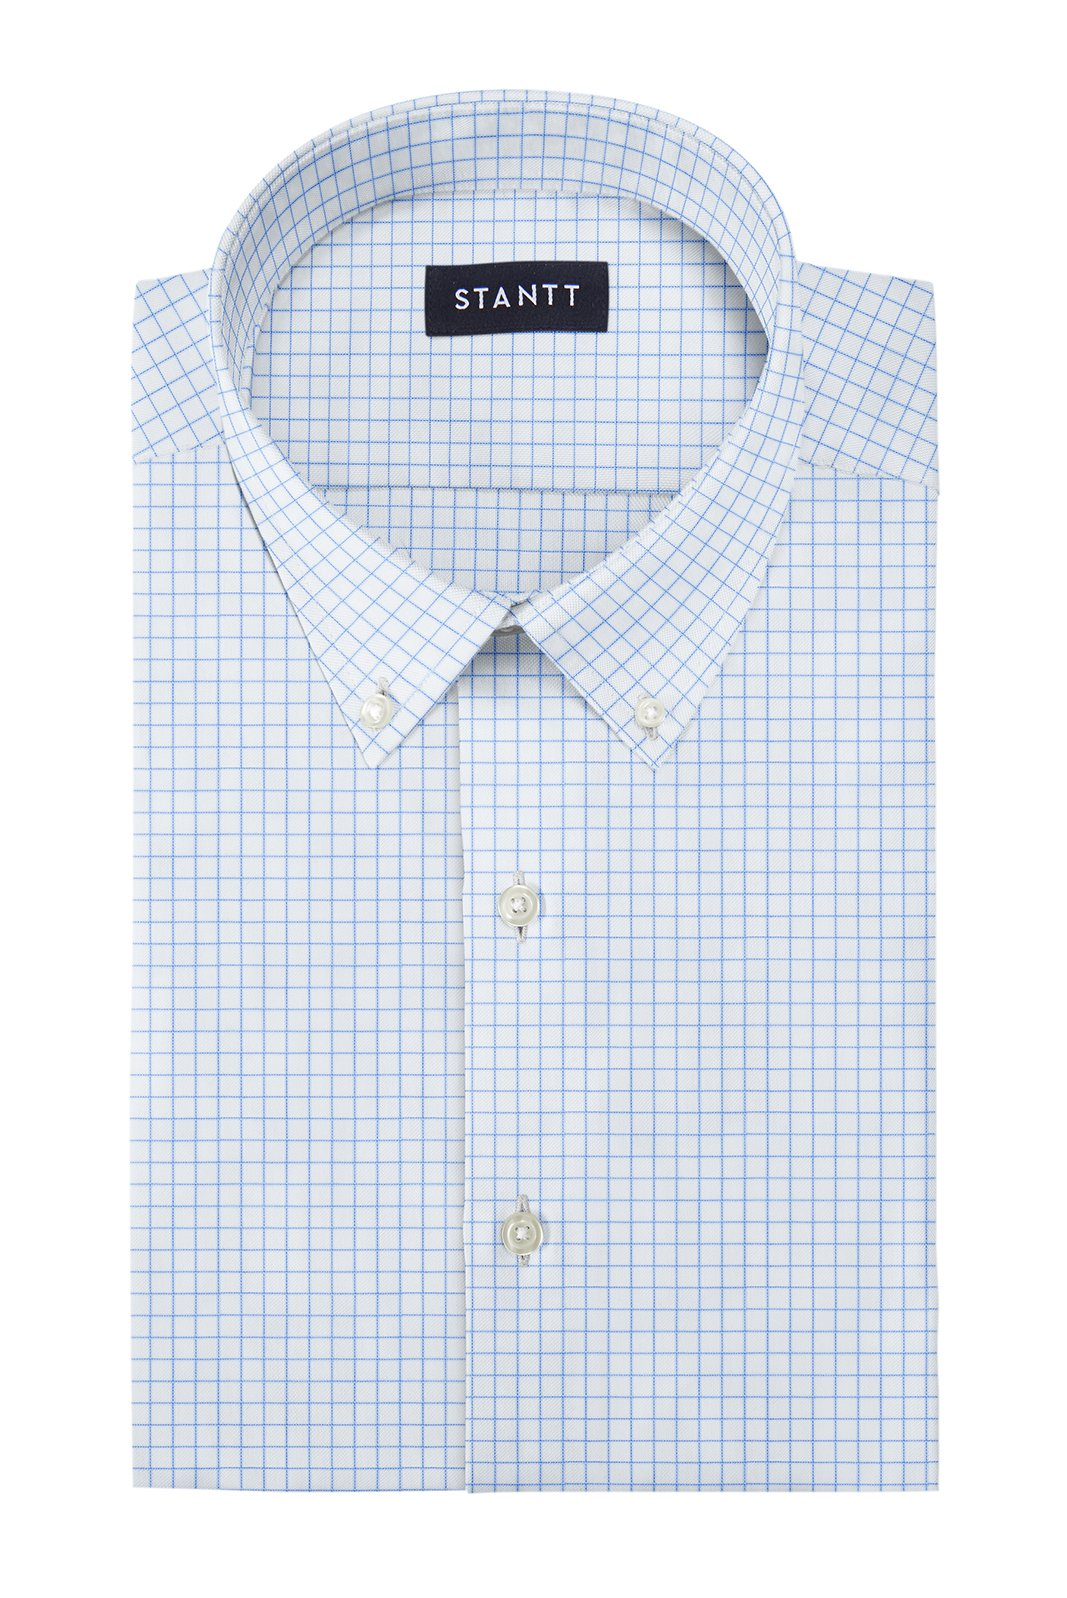 Light Blue Windowpane: Button-Down Collar, Barrel Cuff